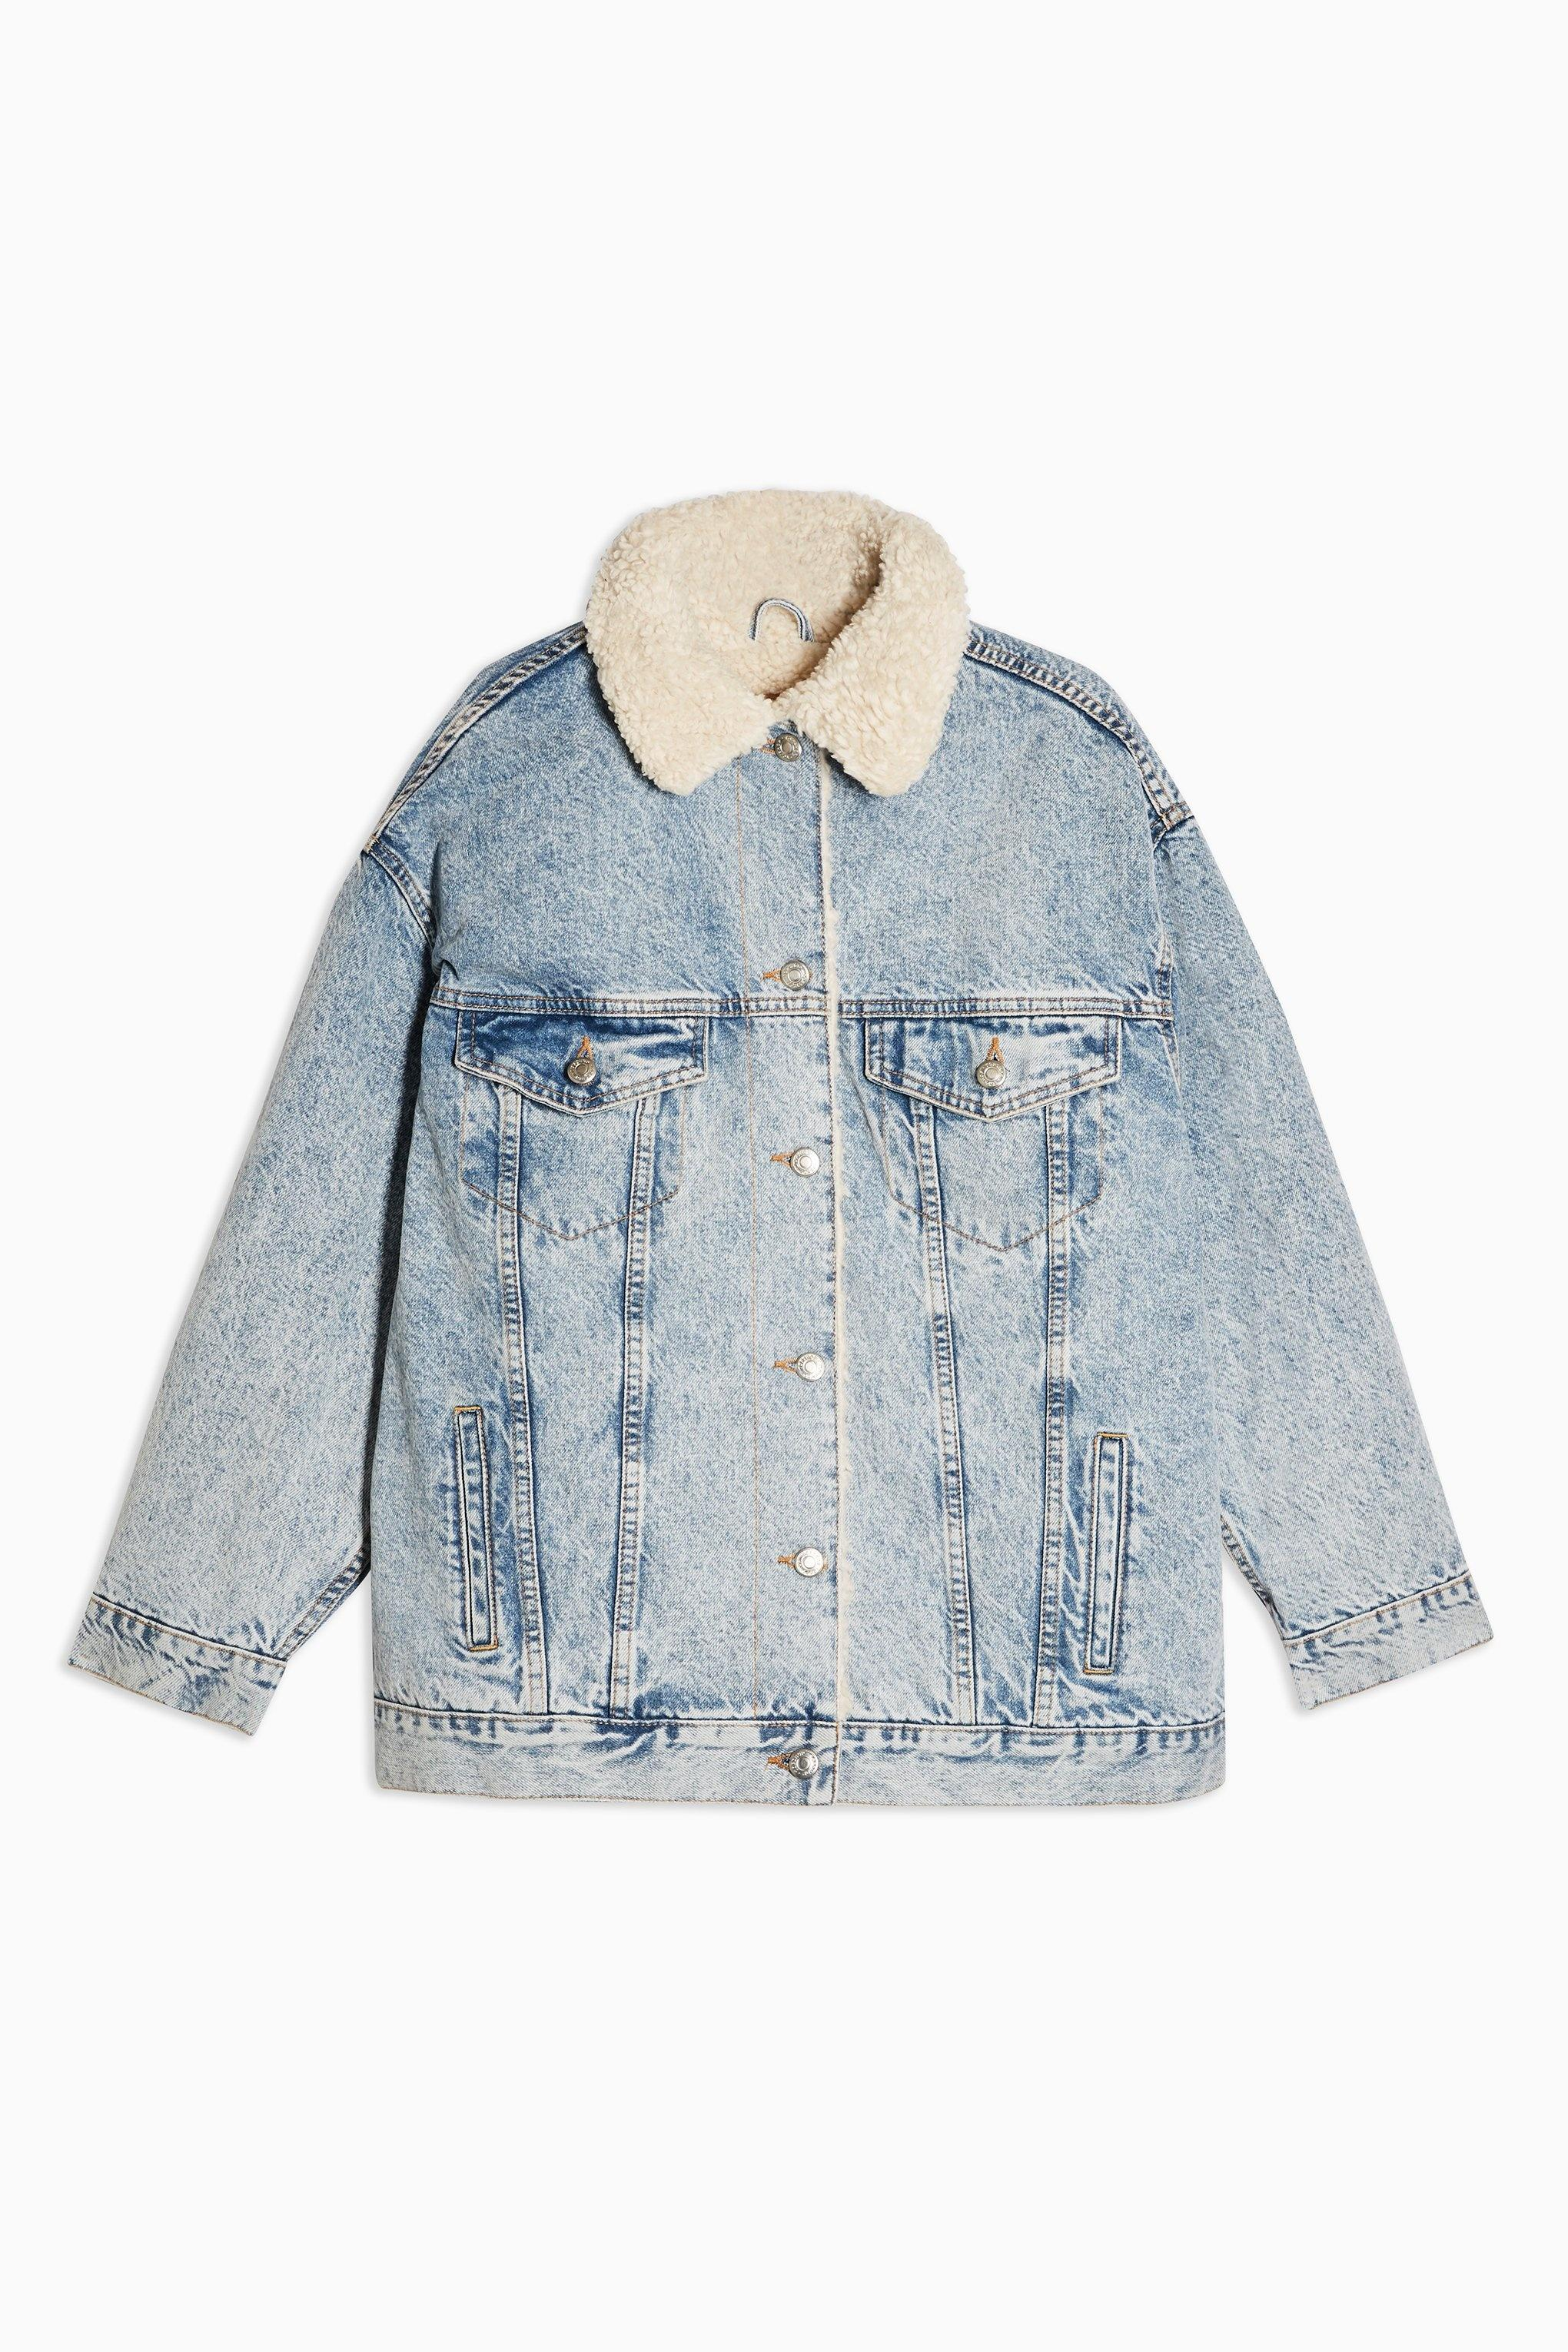 sale best authentic new products TOPSHOP Bleach Super Oversized Borg Lined Denim Jacket in Bleach ...